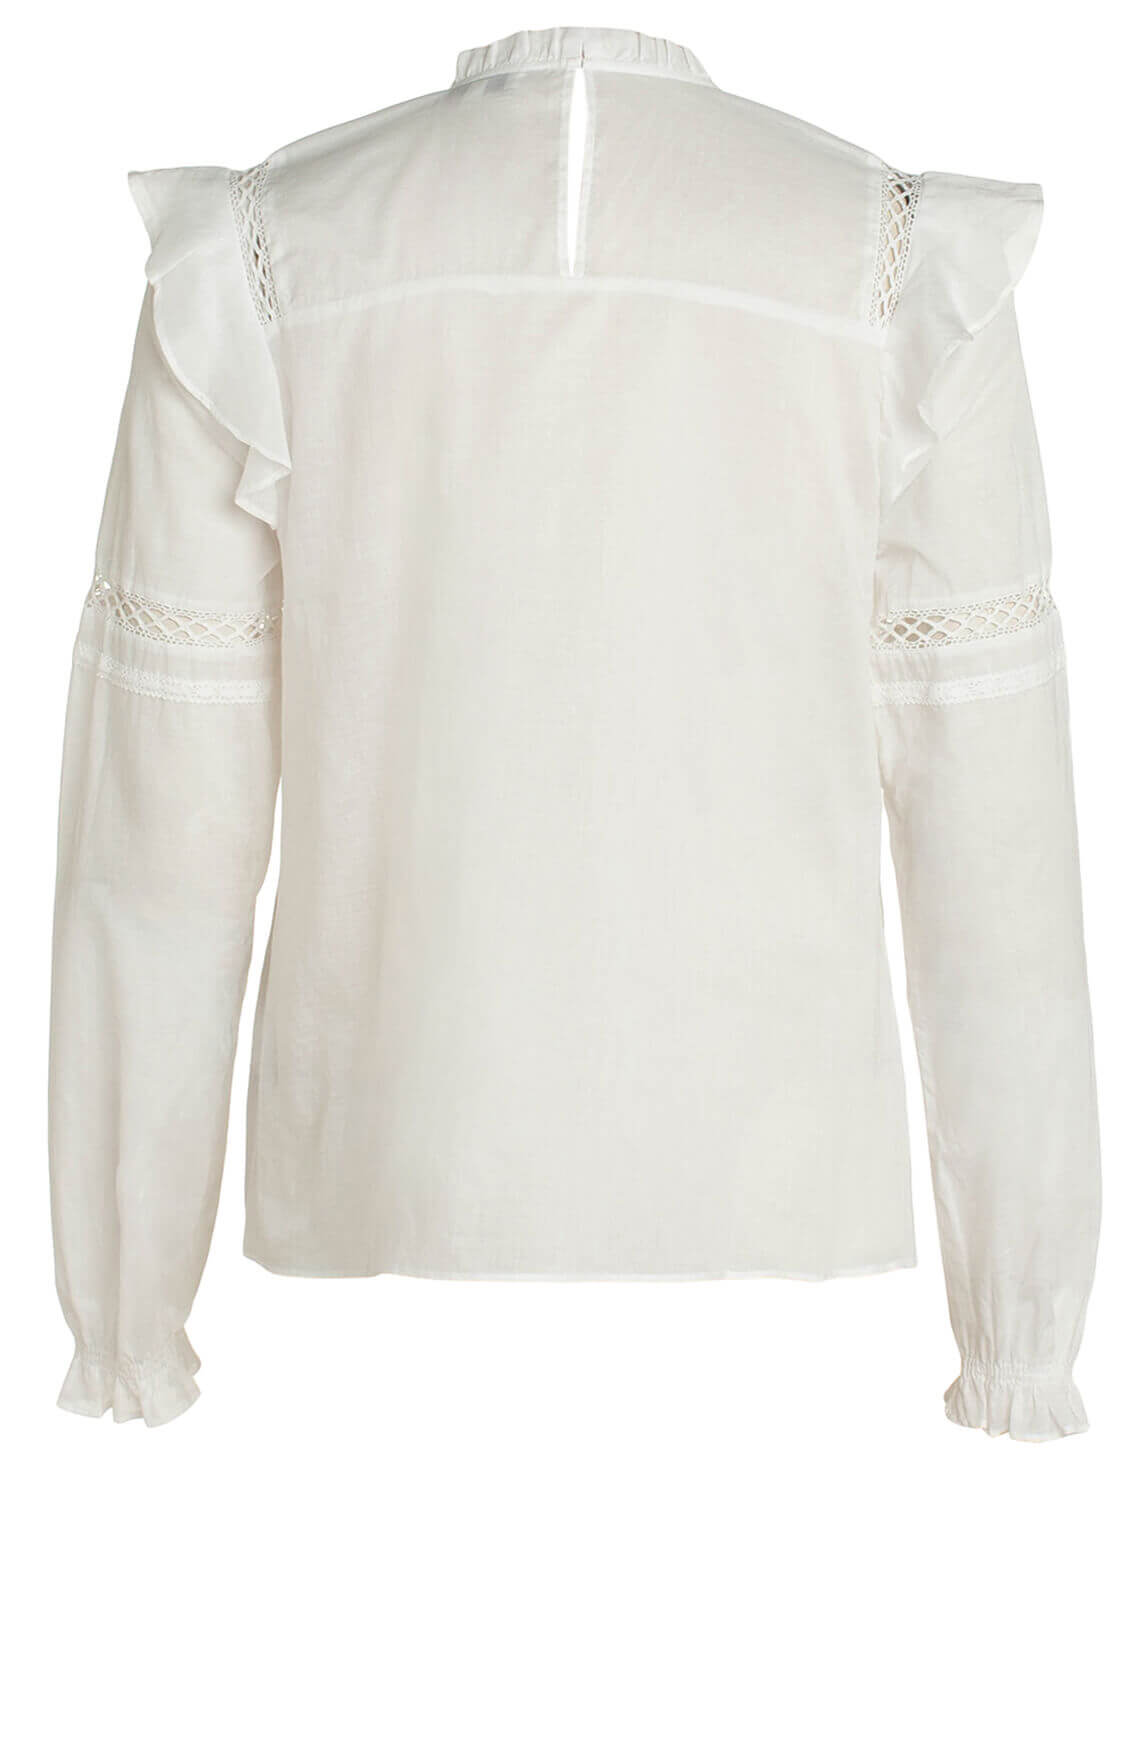 Anna Dames Blouse met broderie wit